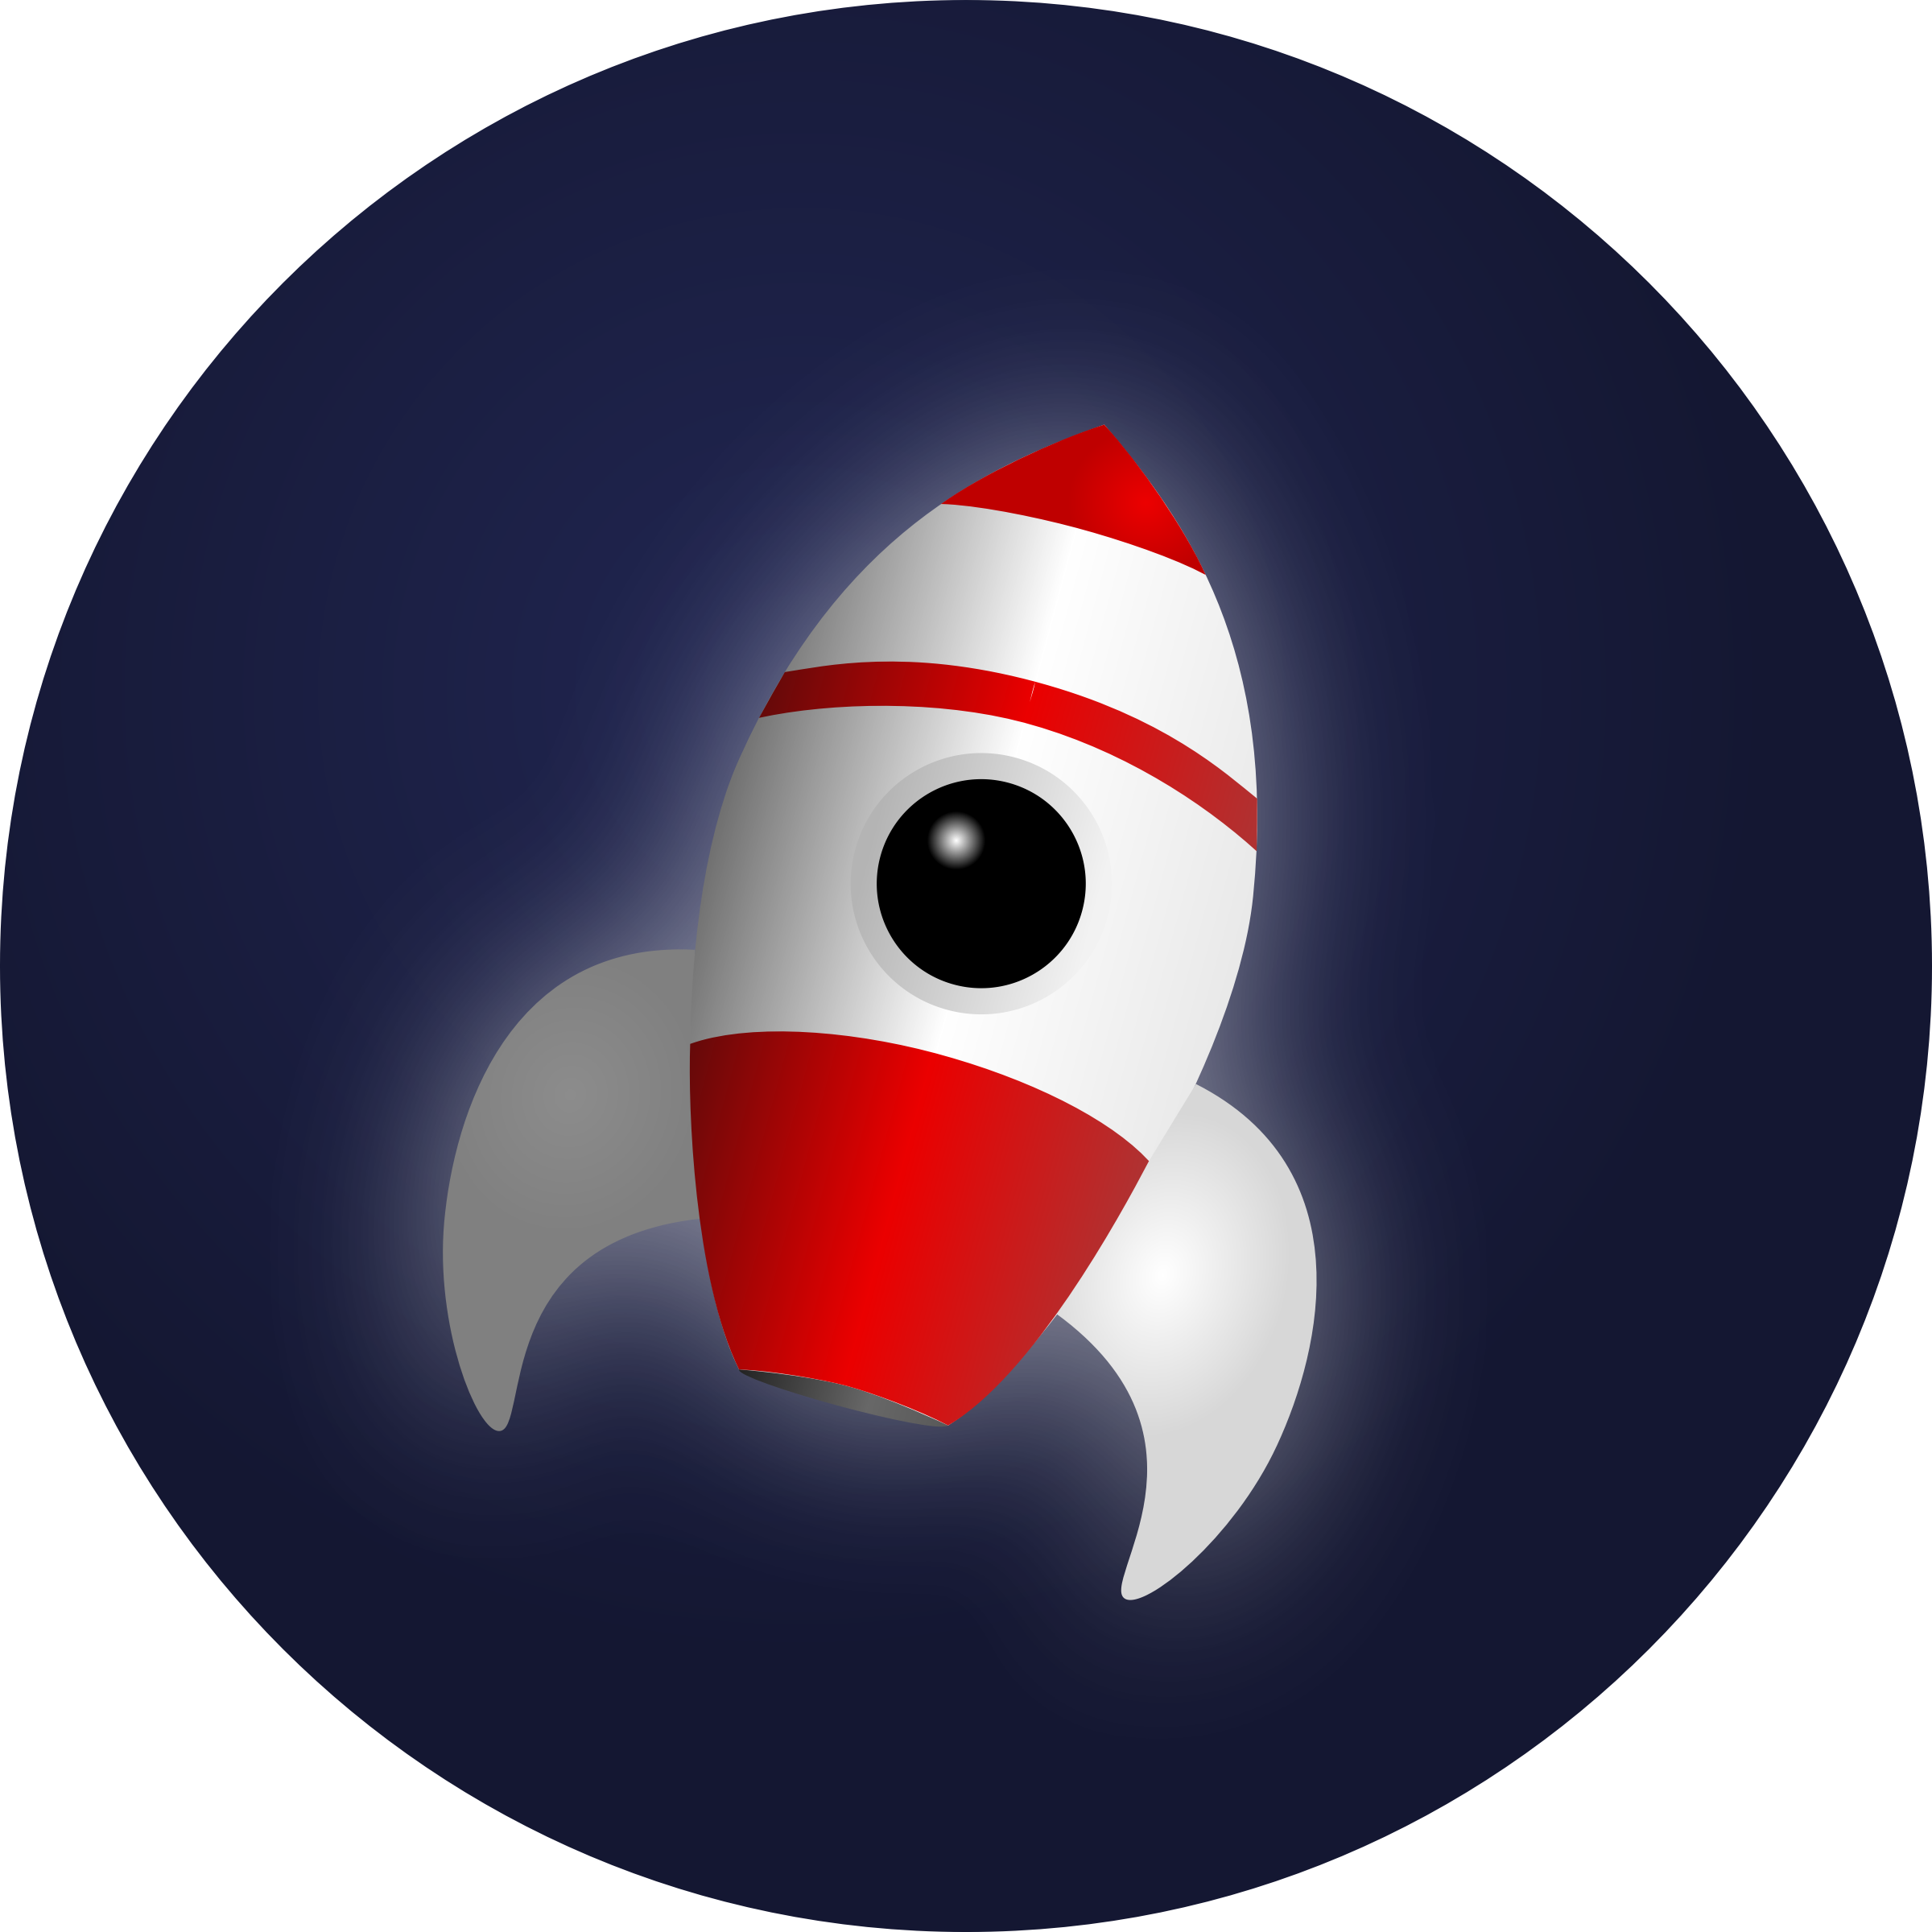 Rocket in Space by Mahmoud